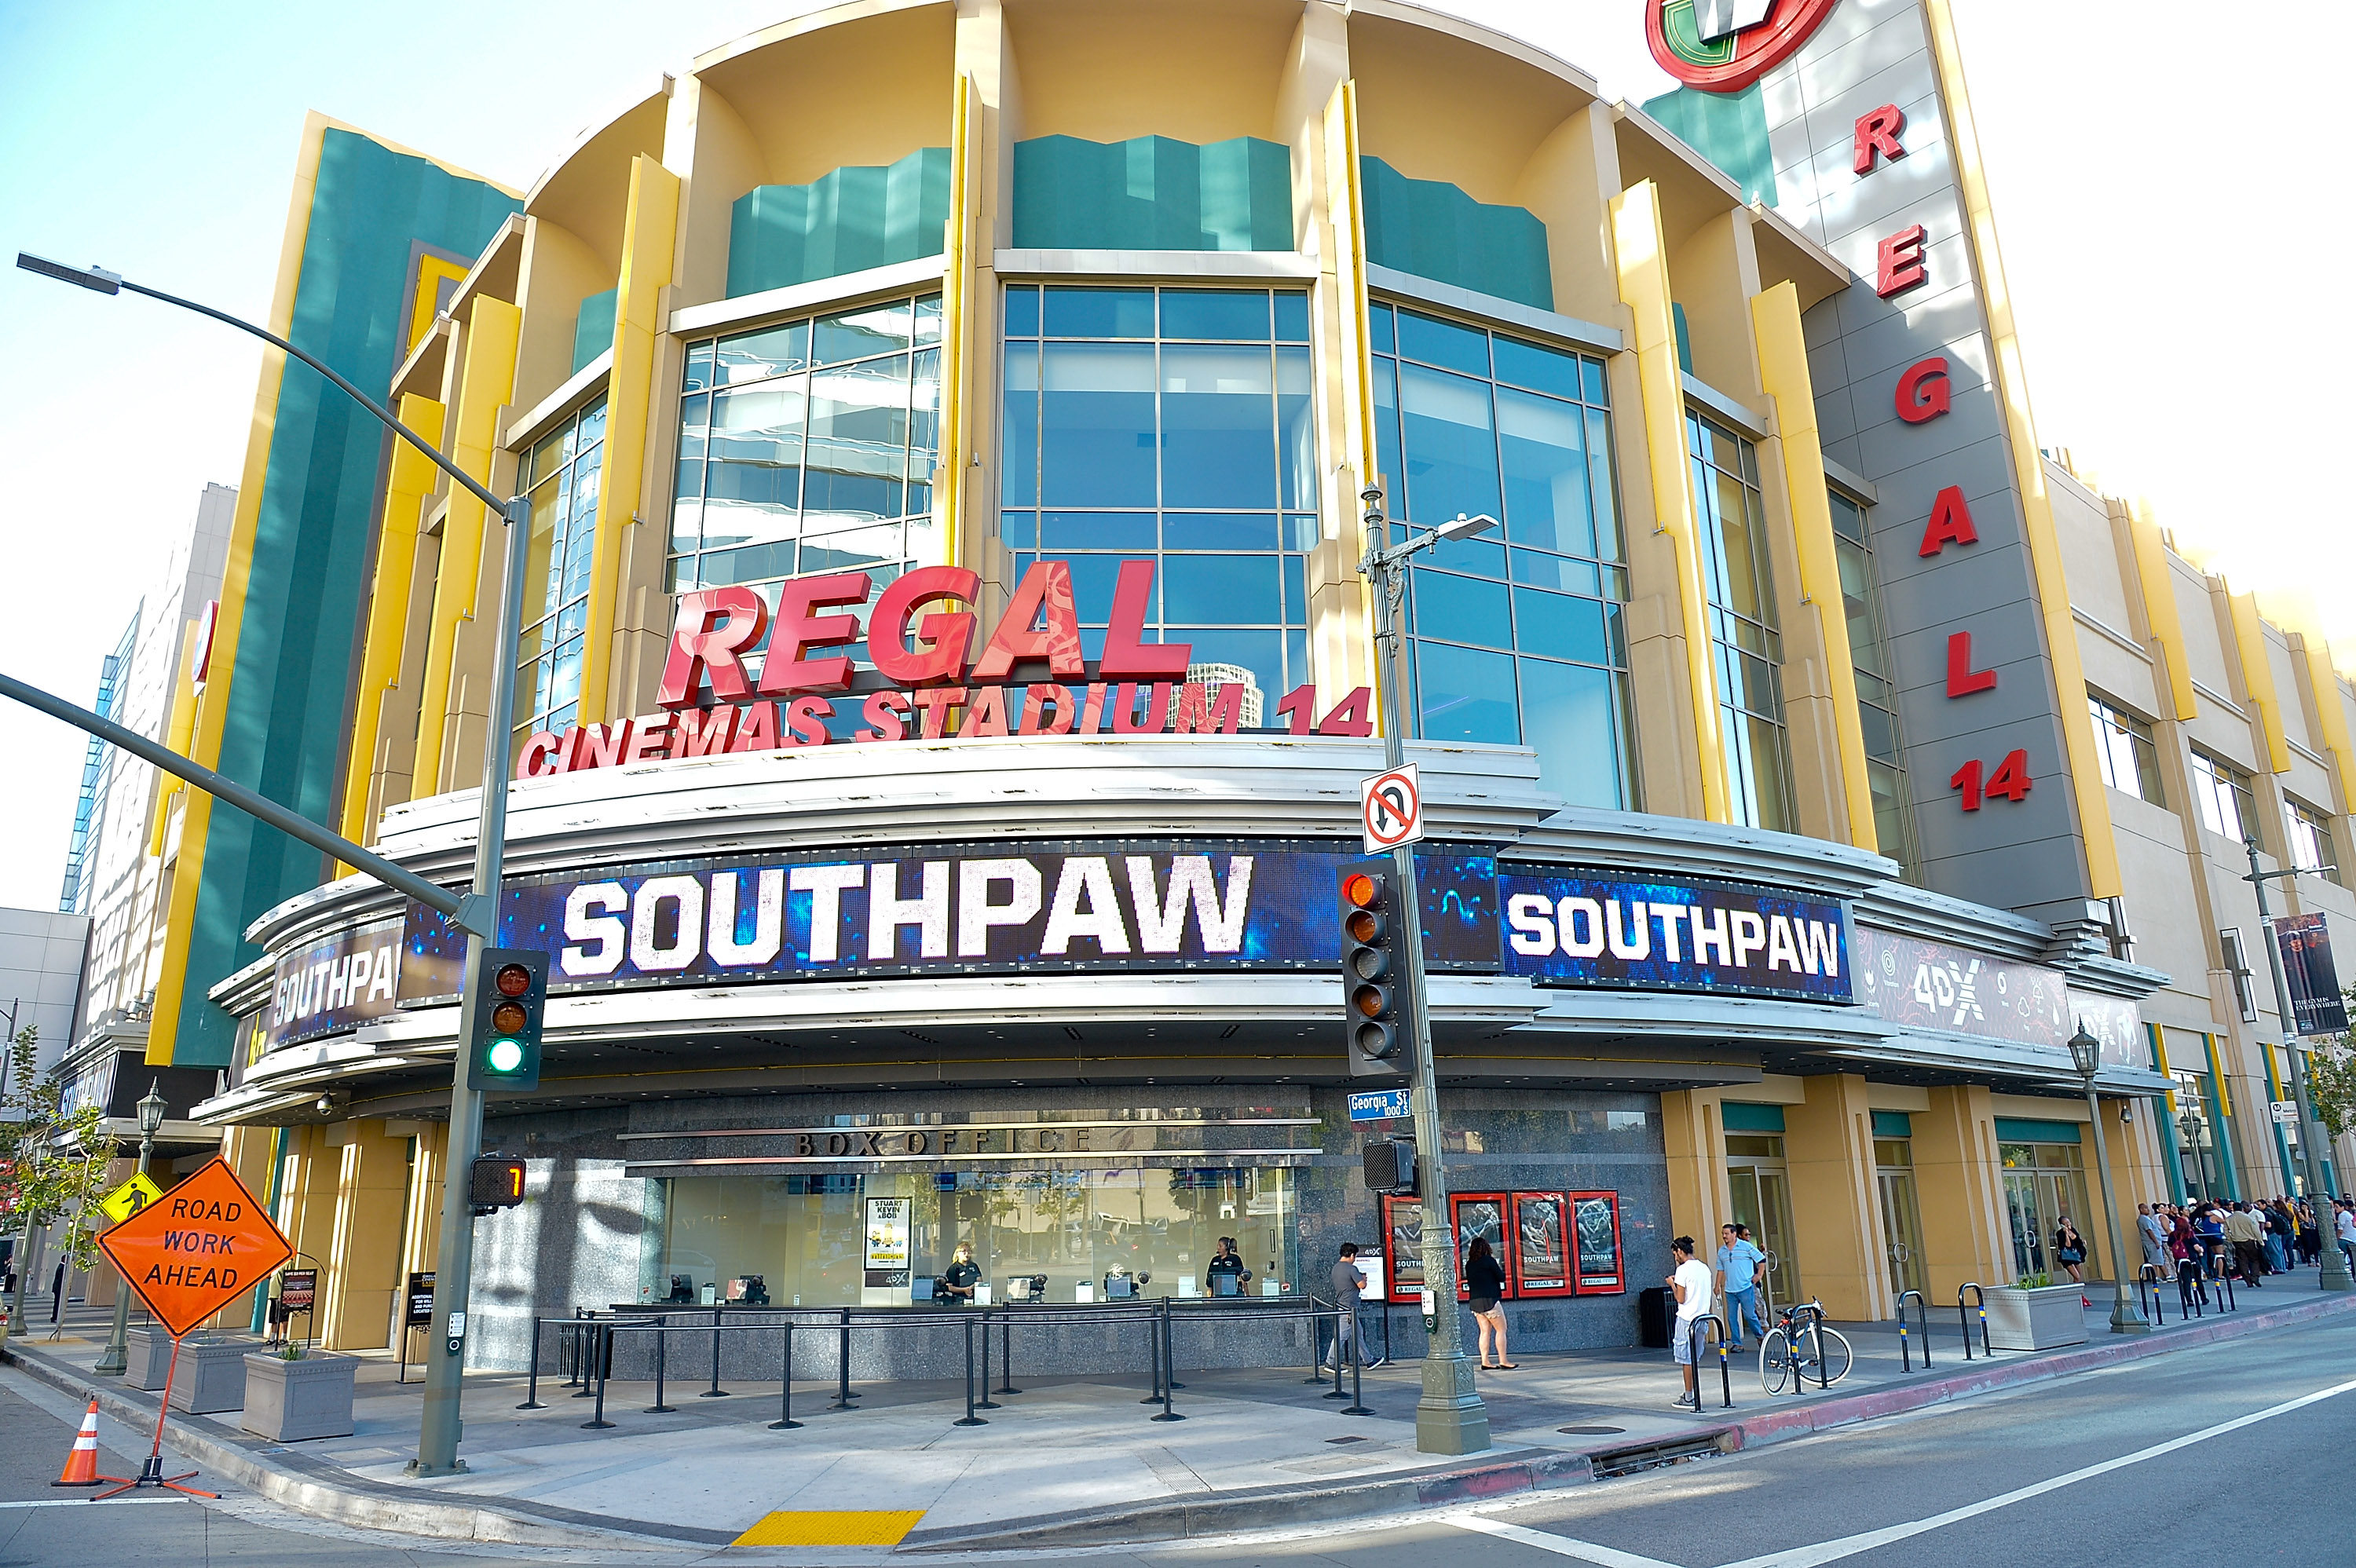 Regal Movie Theater Locations. Fandango is the go-to destination for Regal Entertainment Group: Regal Cinemas, United Artists Theatres and Edwards Cinemas. We've got your movie times, tickets, theater maps, menus and more. Find the right movie at the right time at a Regal Cinemas near you. Go.